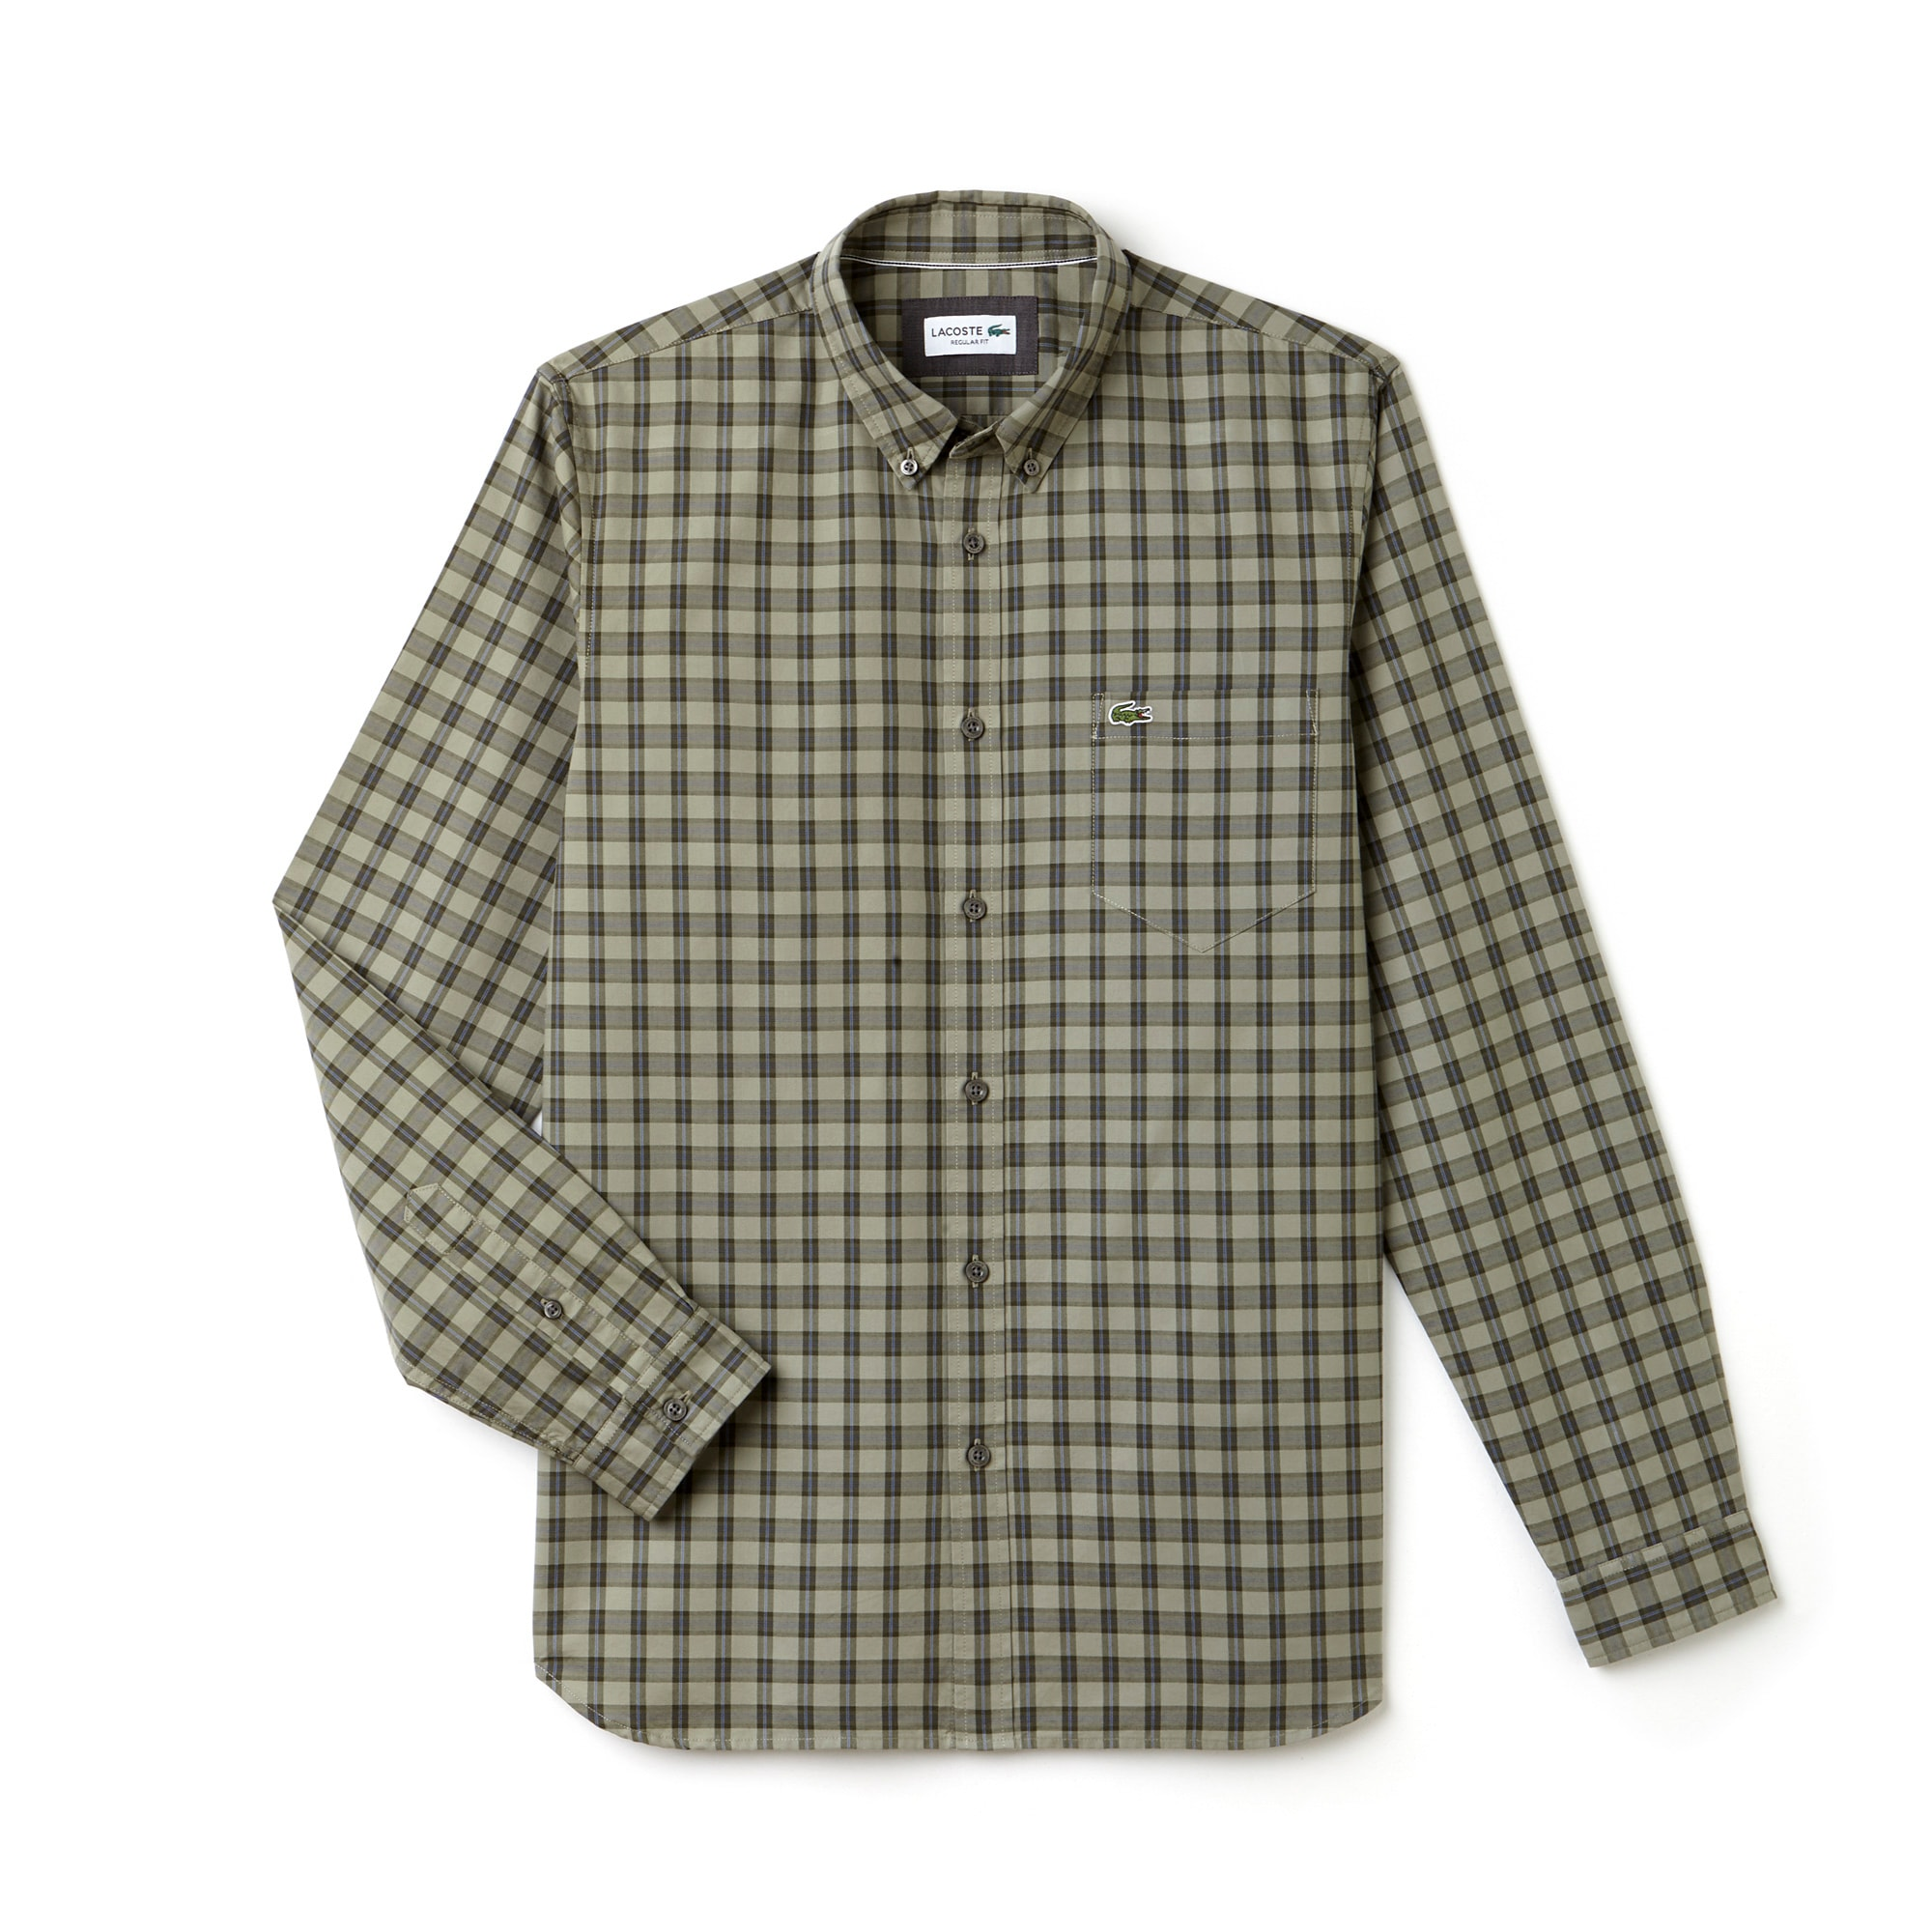 Men's Regular Fit Check Oxford Cotton Shirt